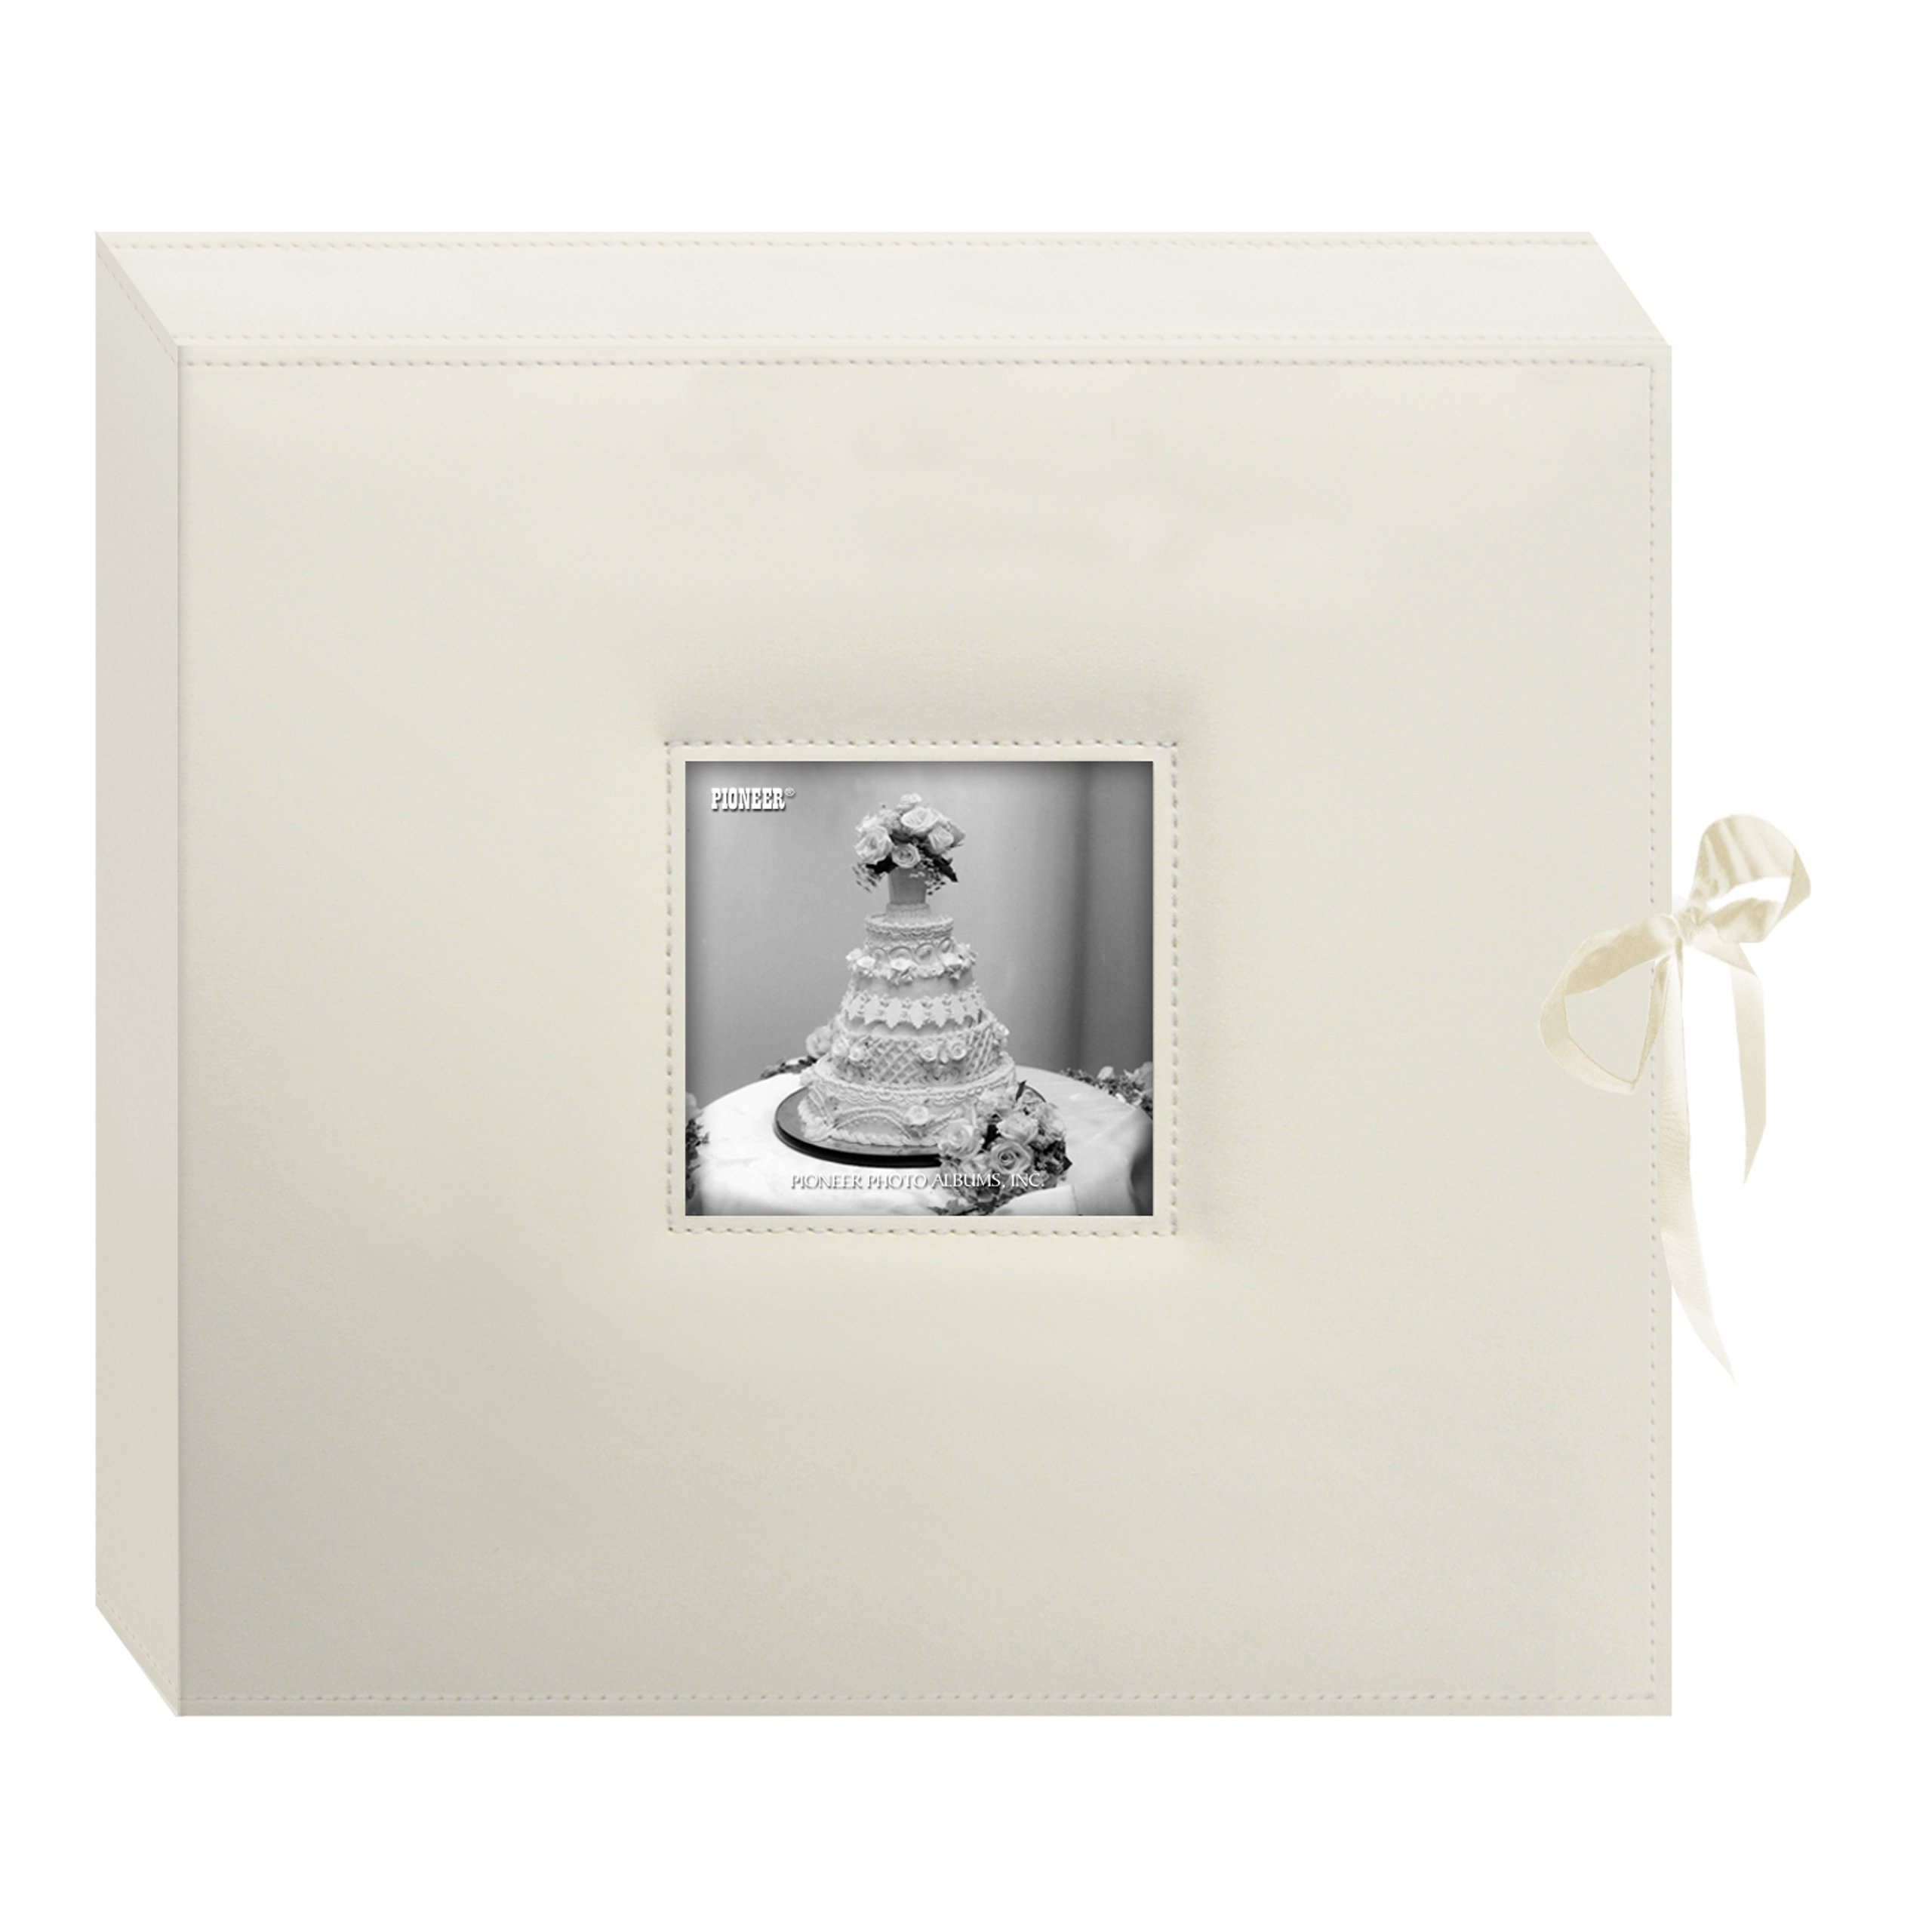 Pioneer 12 Inch by 12 Inch 3-Ring Leatherette Inset Frame and Ribbon Closure Memory Book, Ivory